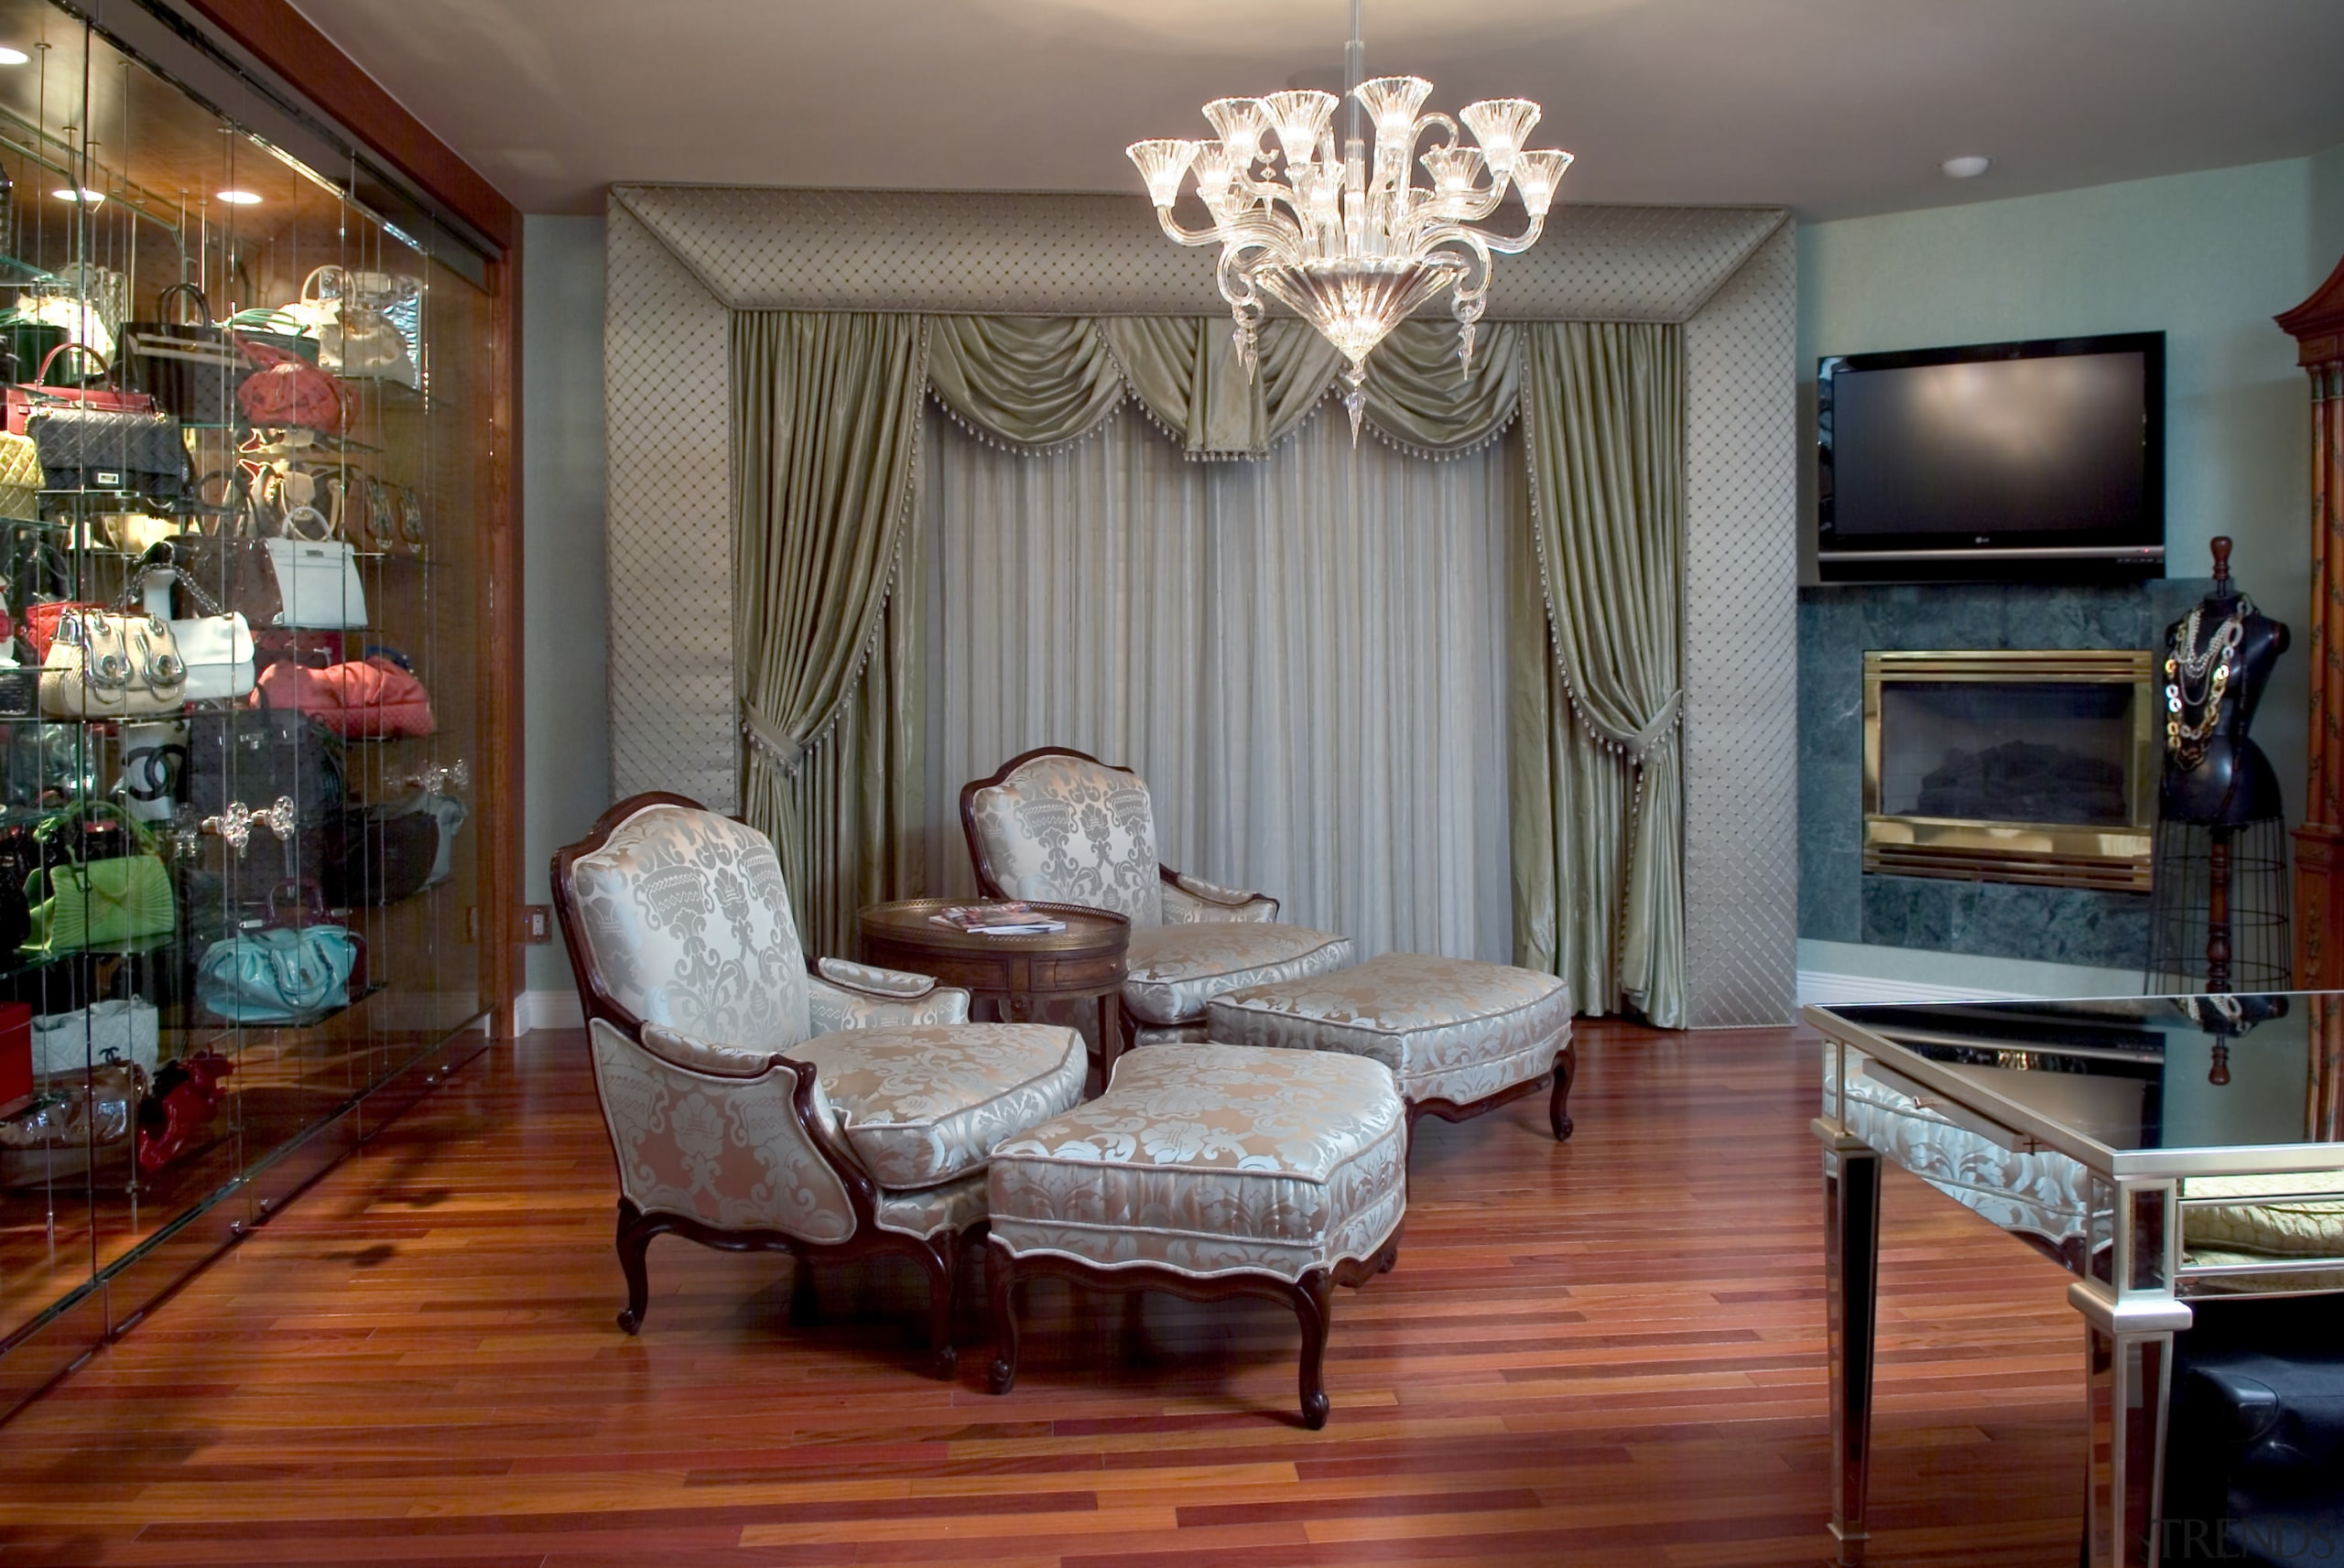 Hand bag room with day chairs - Hand ceiling, floor, flooring, furniture, home, interior design, living room, room, wall, gray